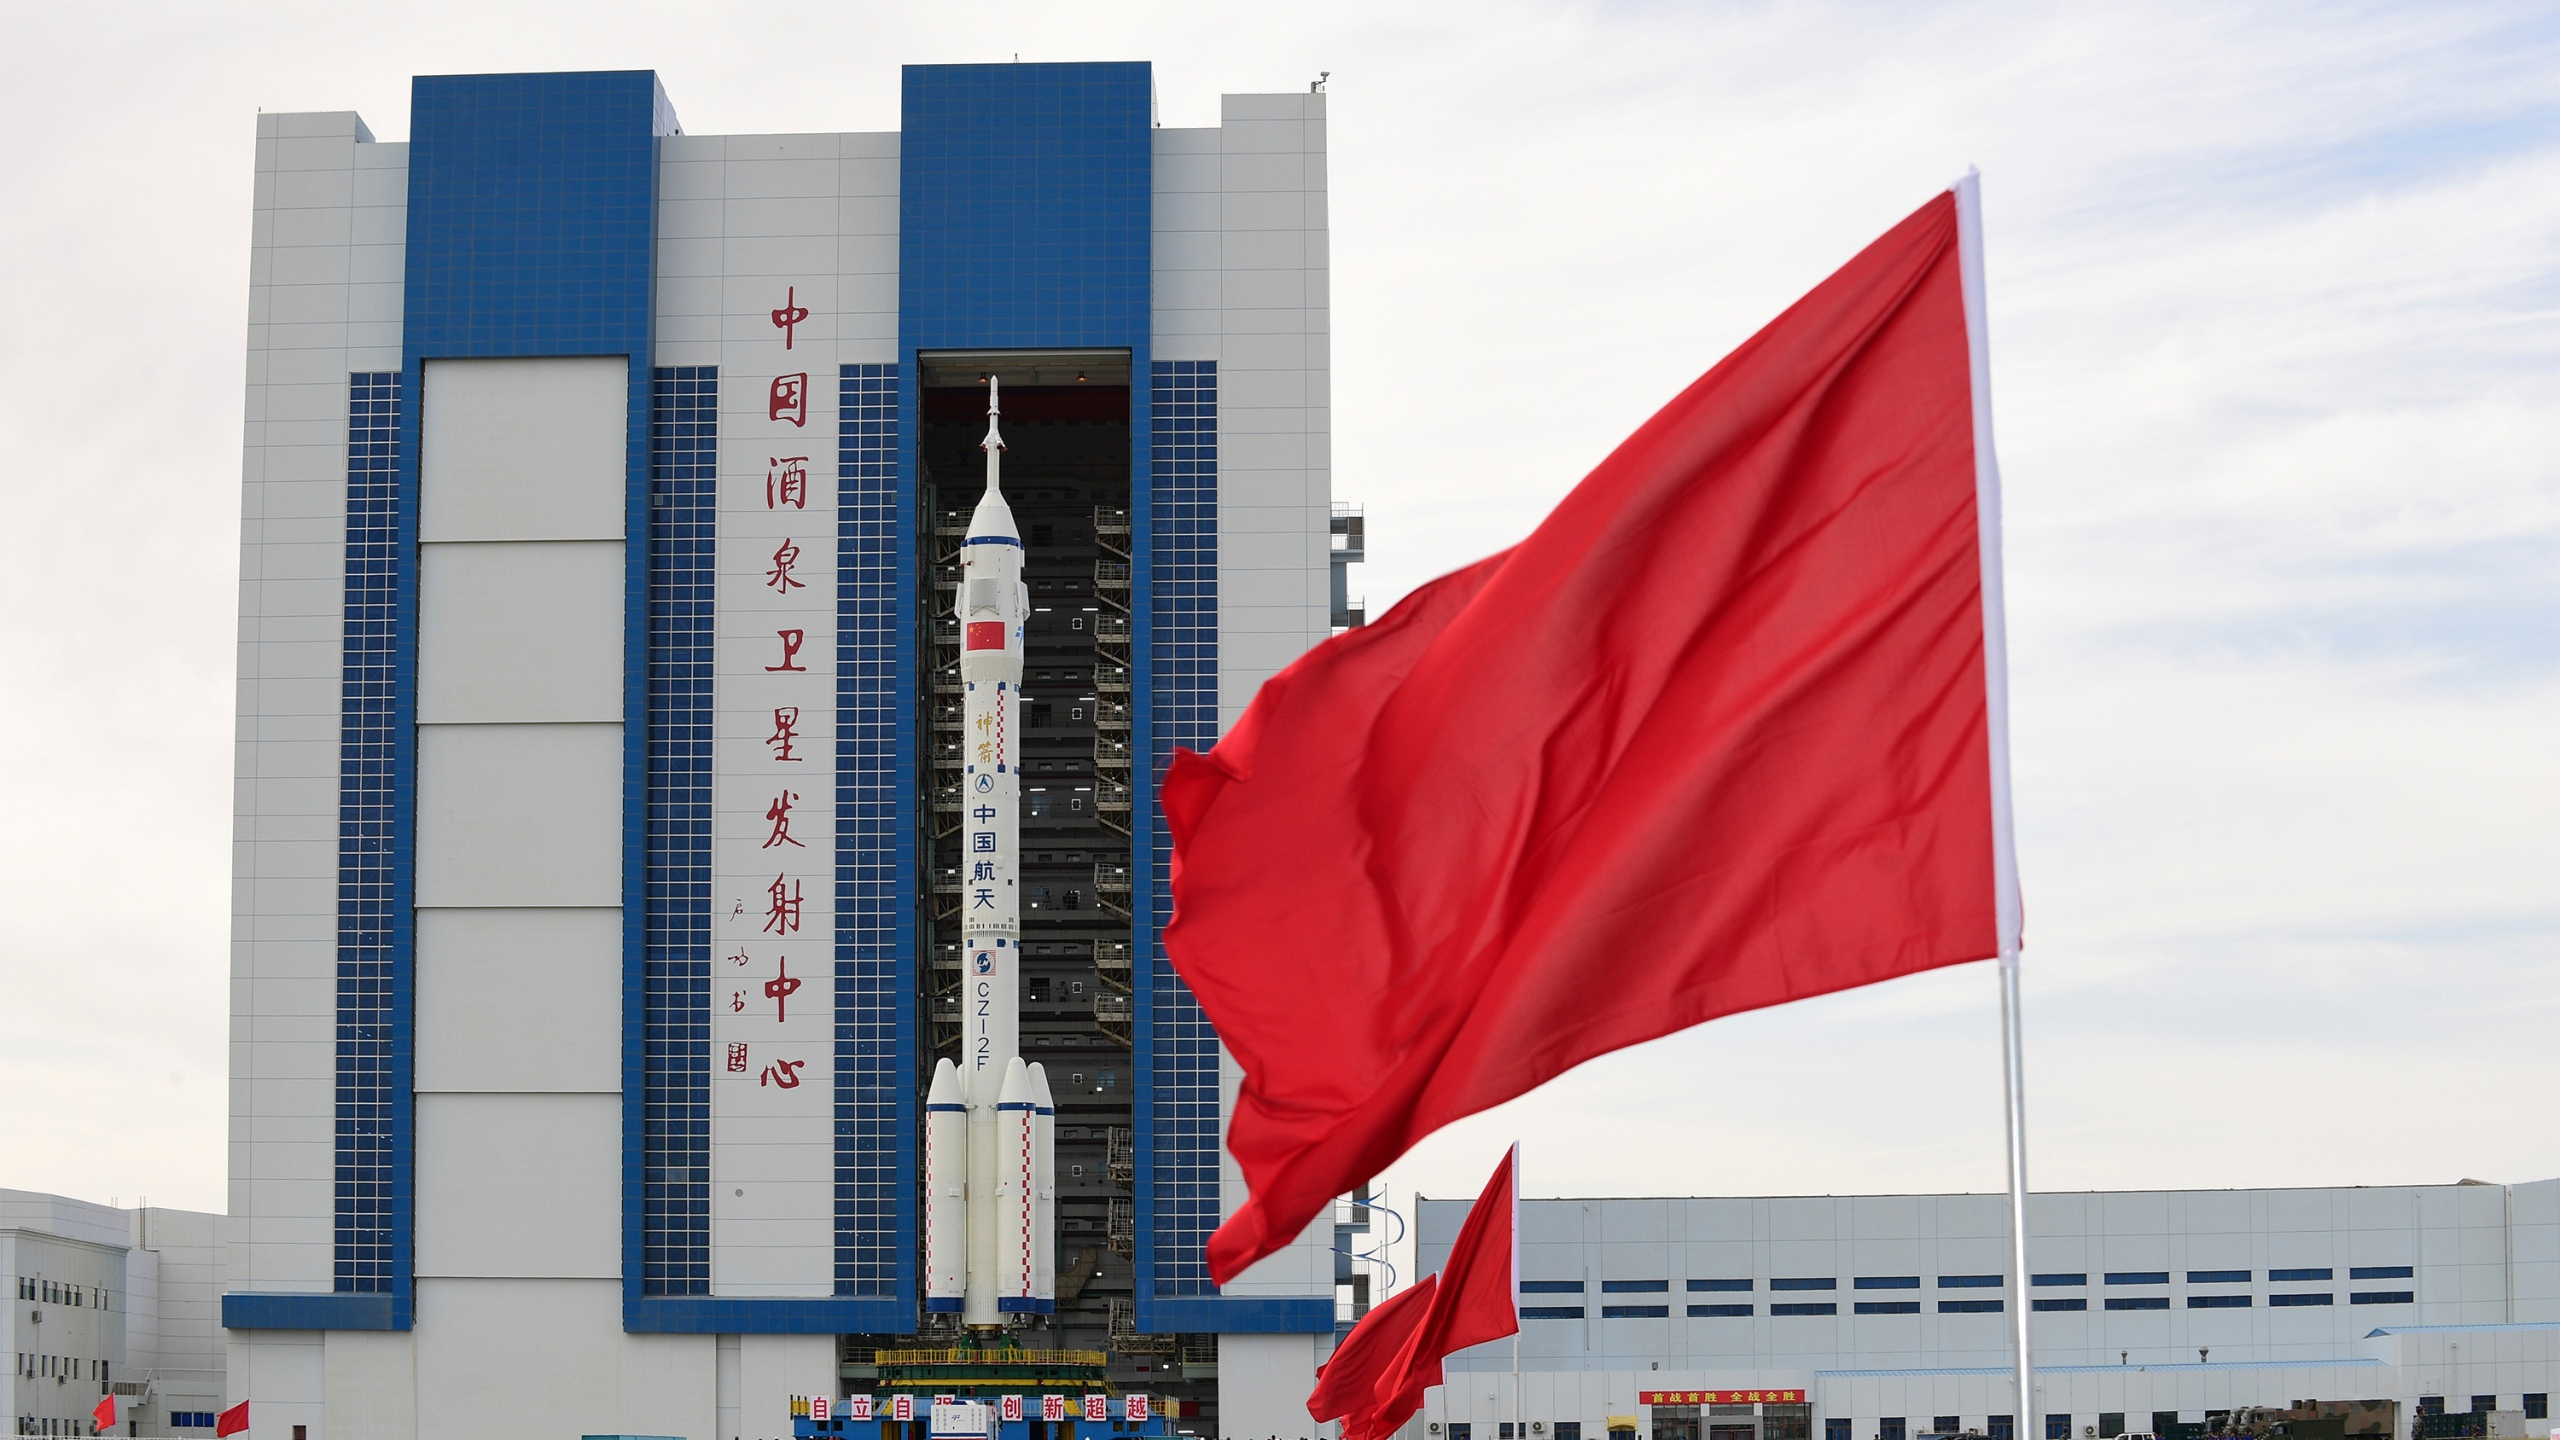 - bfed430bf54544c8b2458cc44468d01b - Rocket on pad, China ready to send 1st crew to space station | WWTI